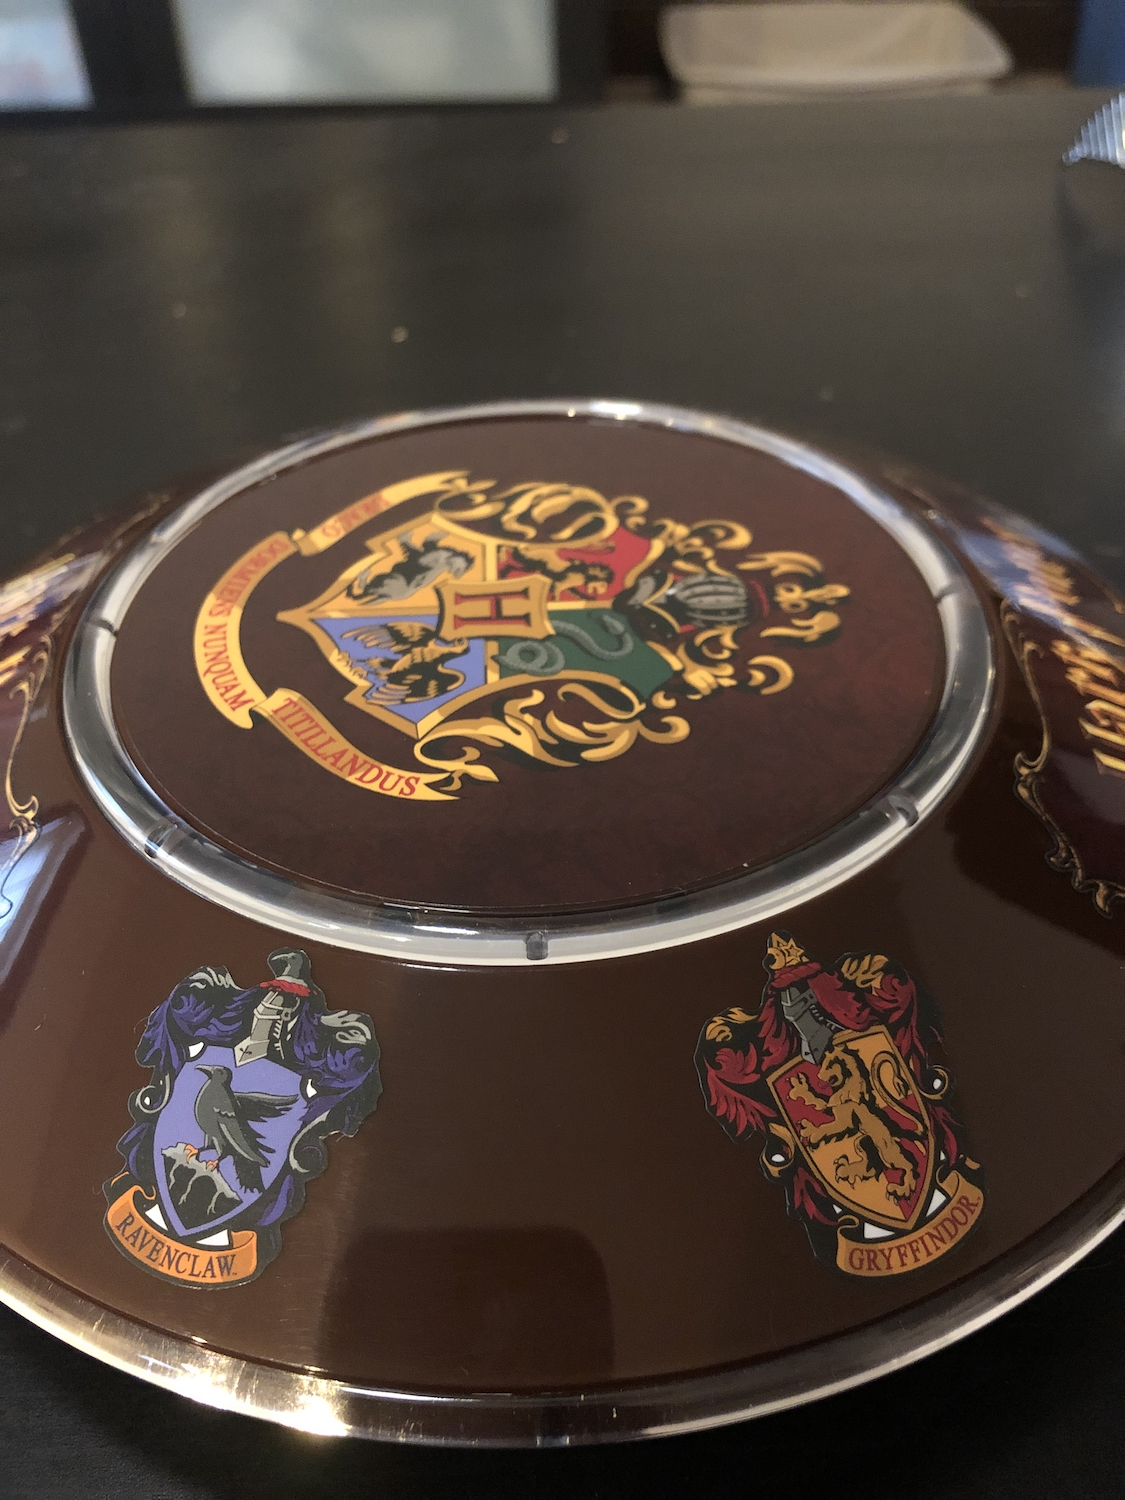 One side of the base has the Ravenclaw and Gryffindor House crests.